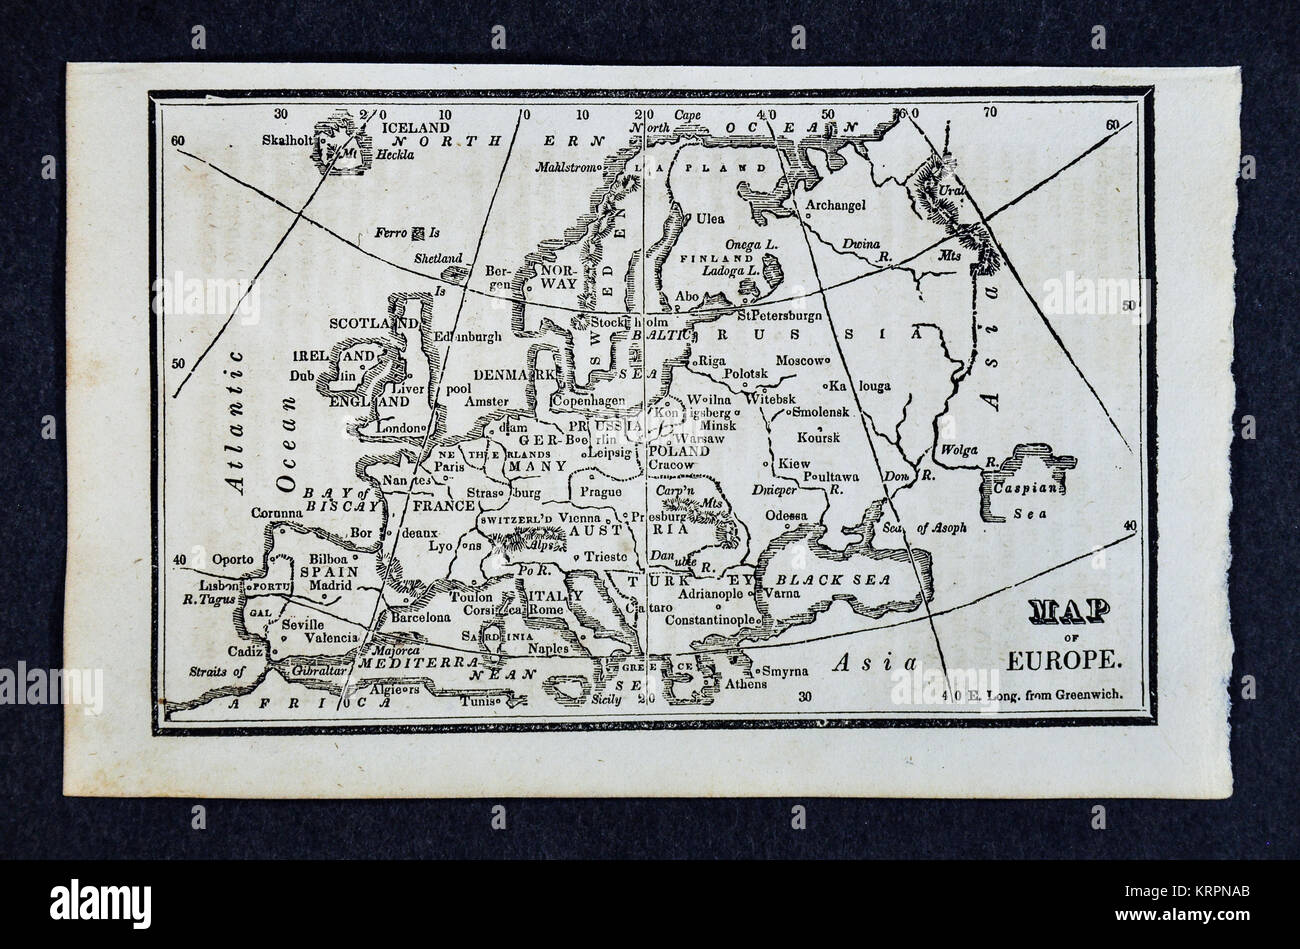 Germany italy england austria russia and france stock photos 1830 nathan hale map europe continent spain france england germany italy austria norway sweden gumiabroncs Choice Image